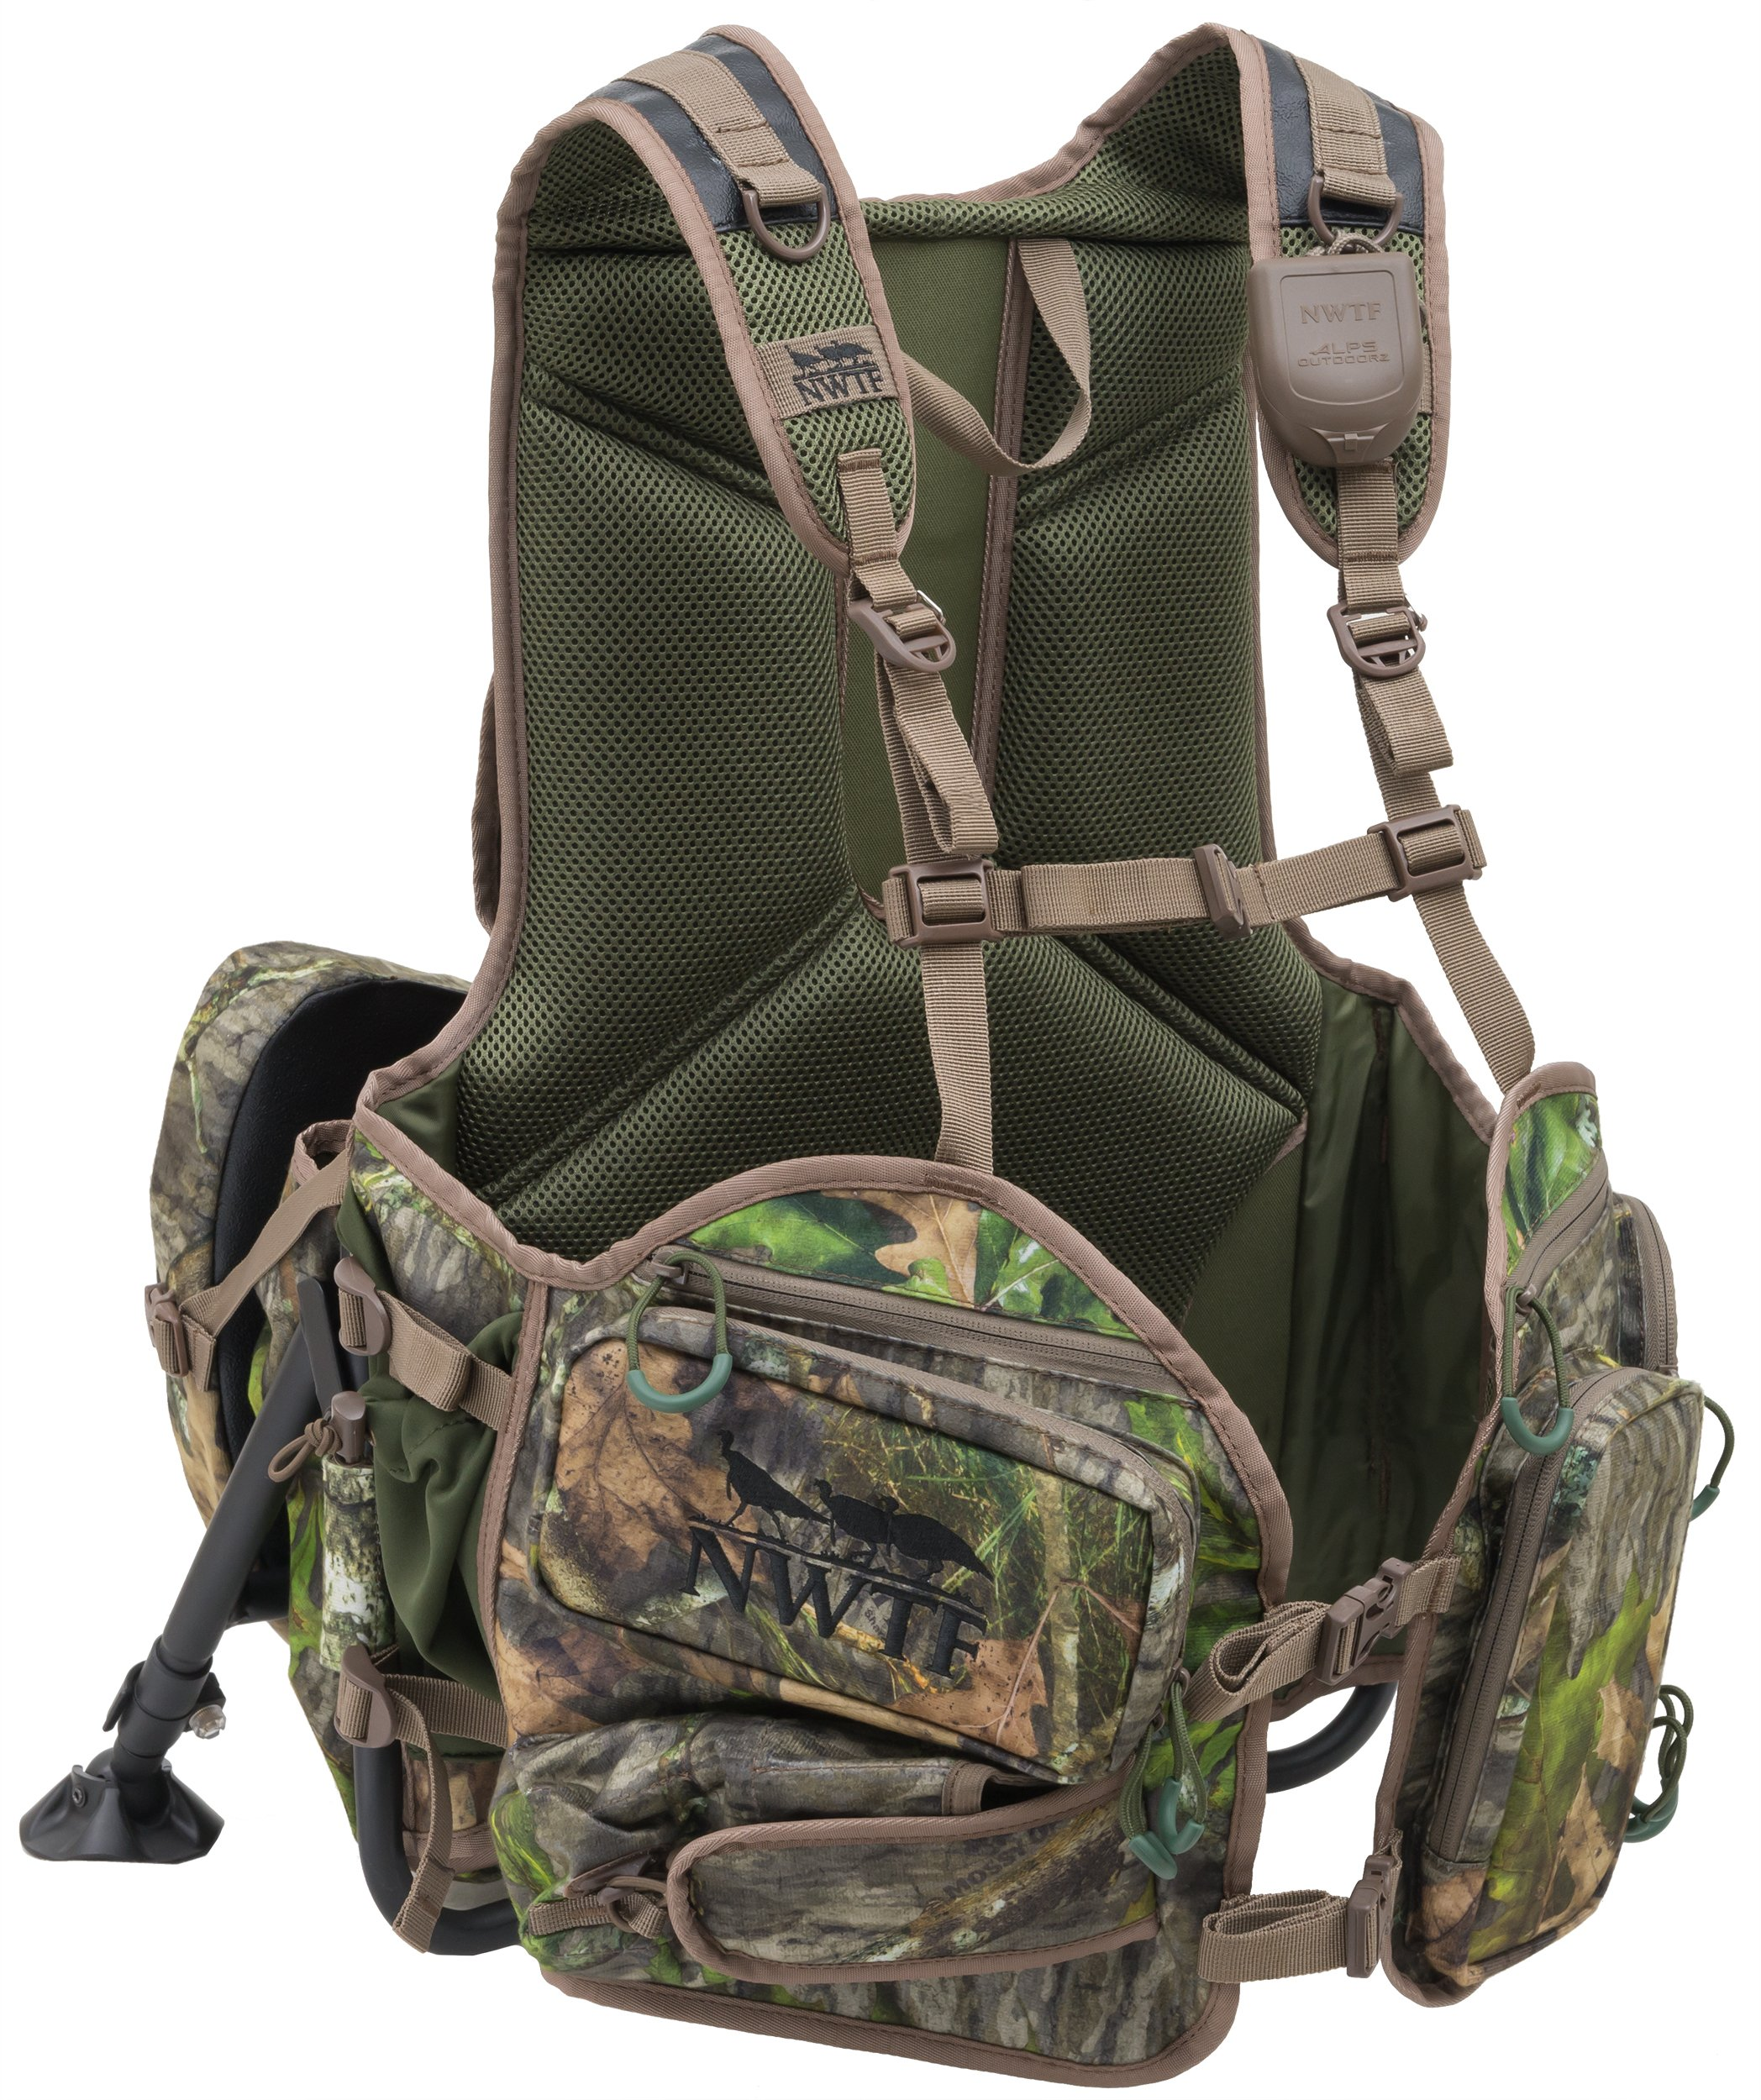 ALPS OutdoorZ NWTF Grand Slam Turkey Vest Standard, Mossy Oak Obsession by ALPS OutdoorZ (Image #1)